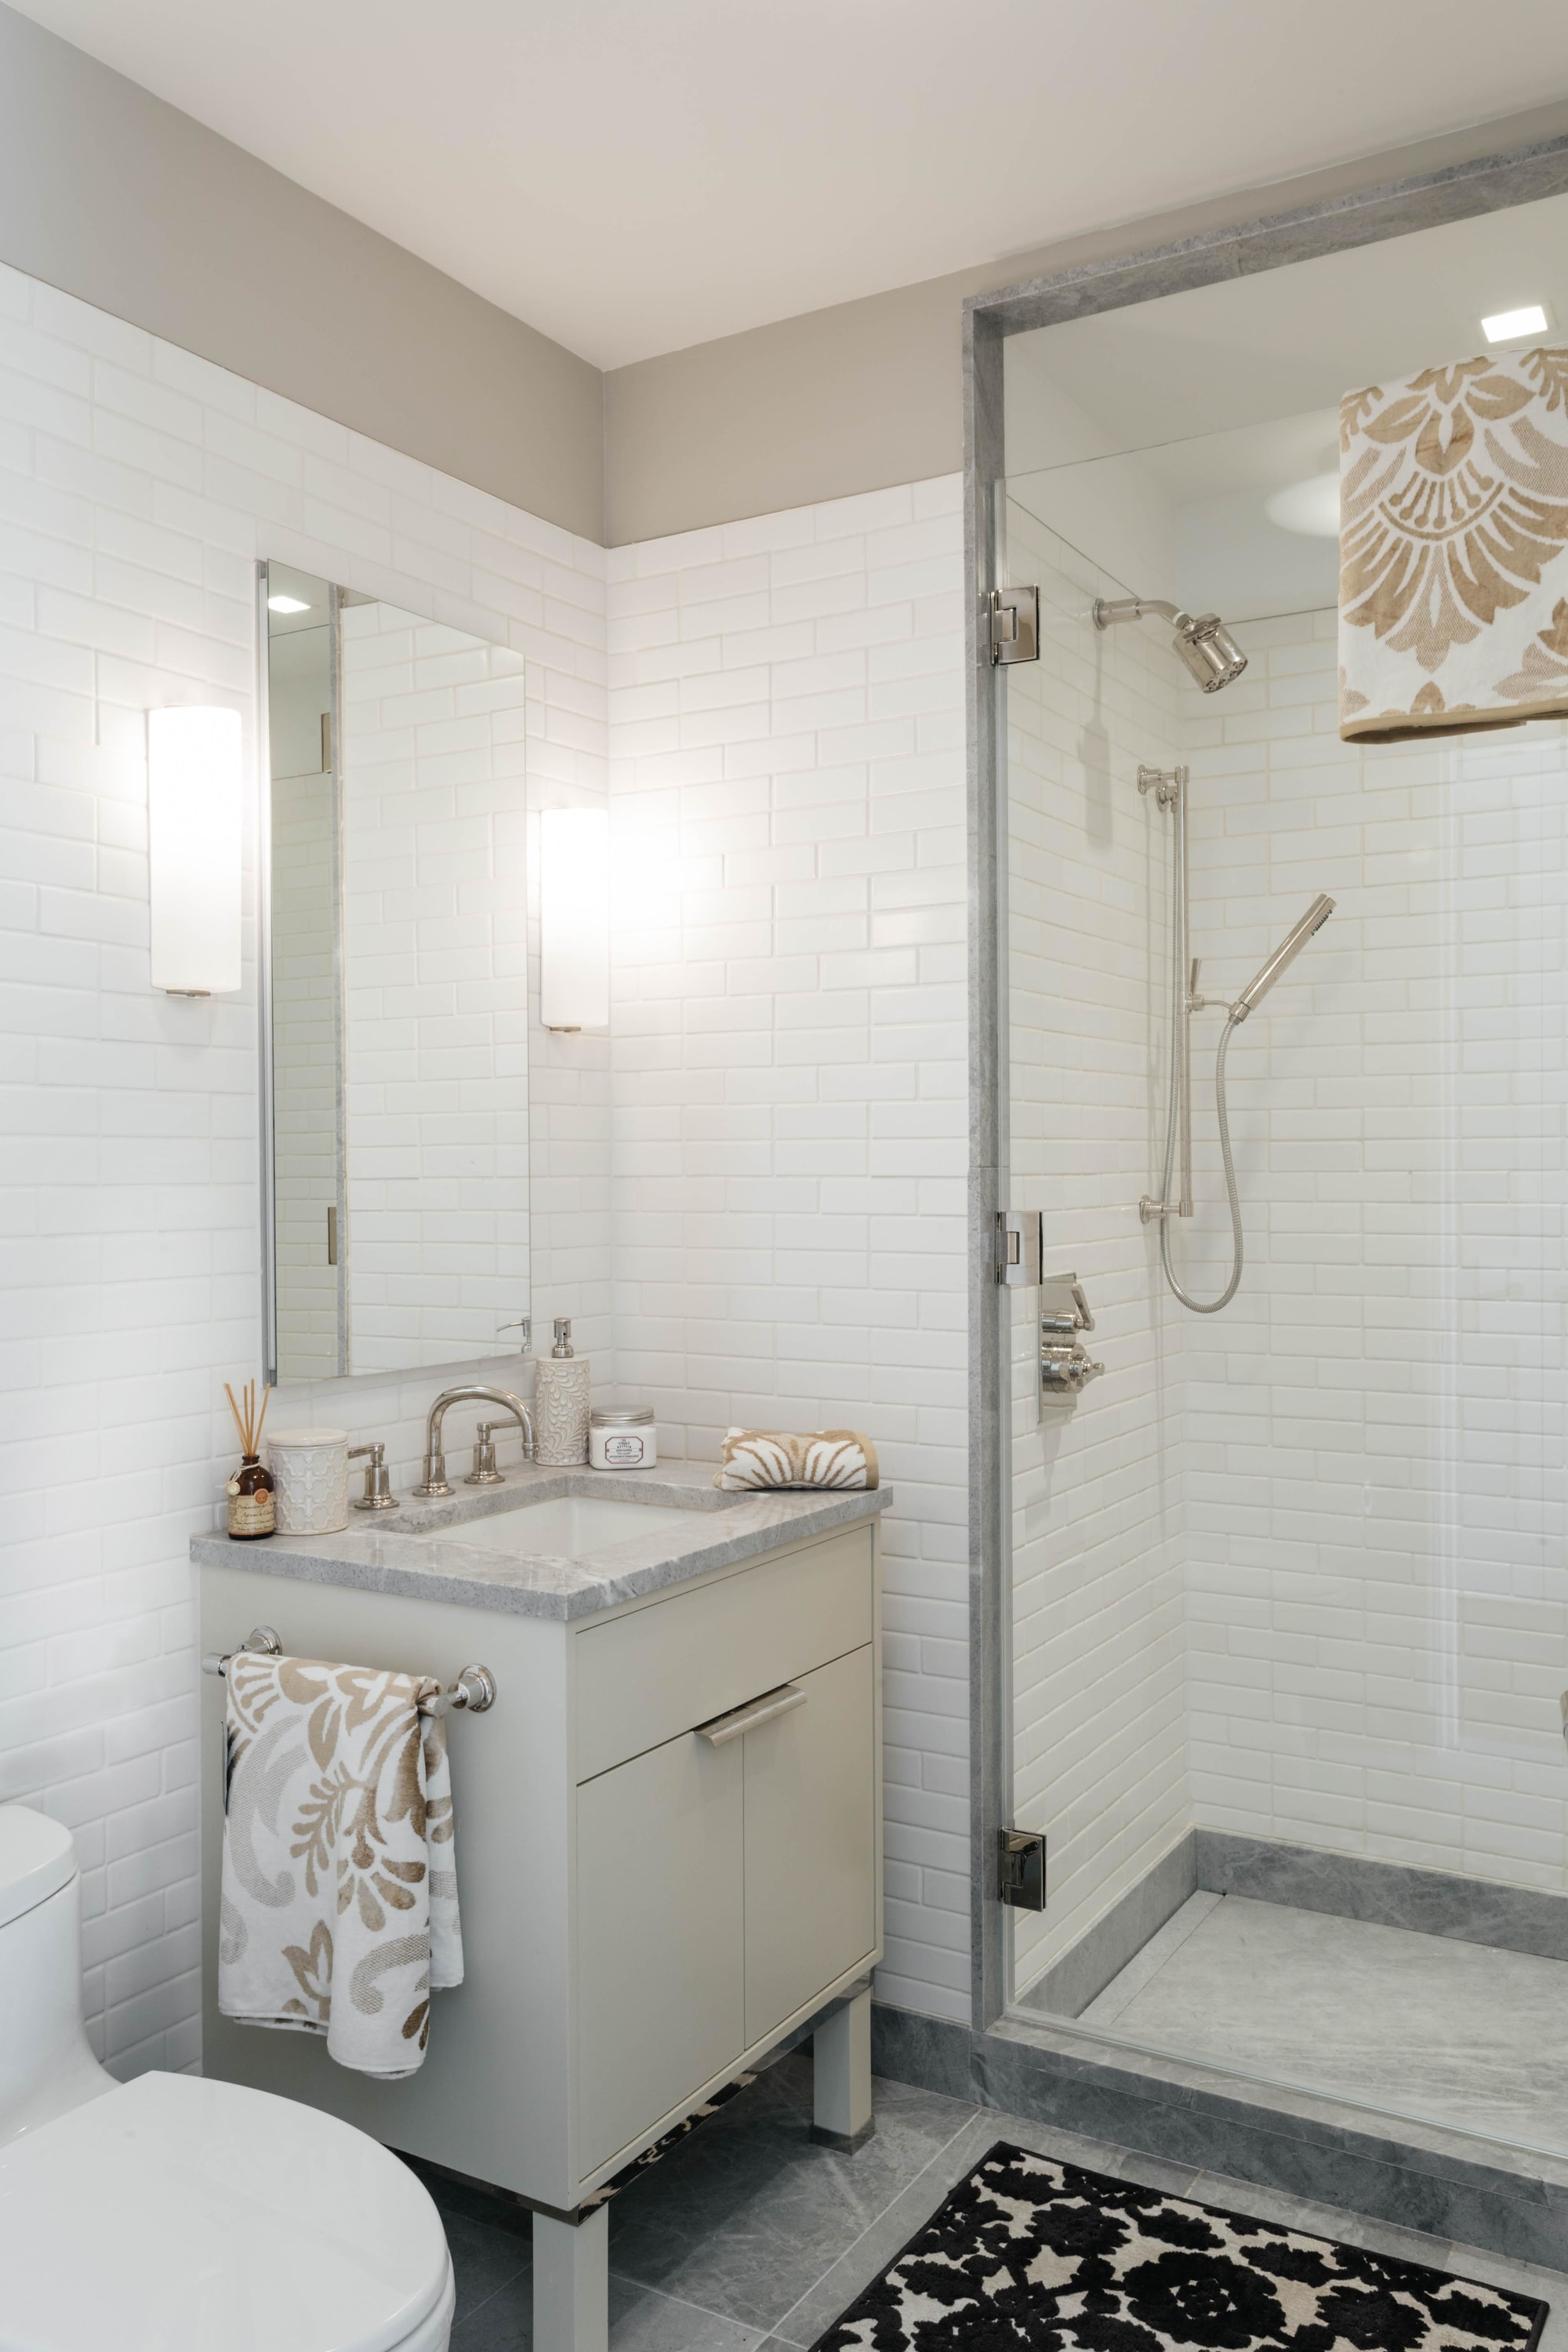 Bathroom with walk in standing shower and sink